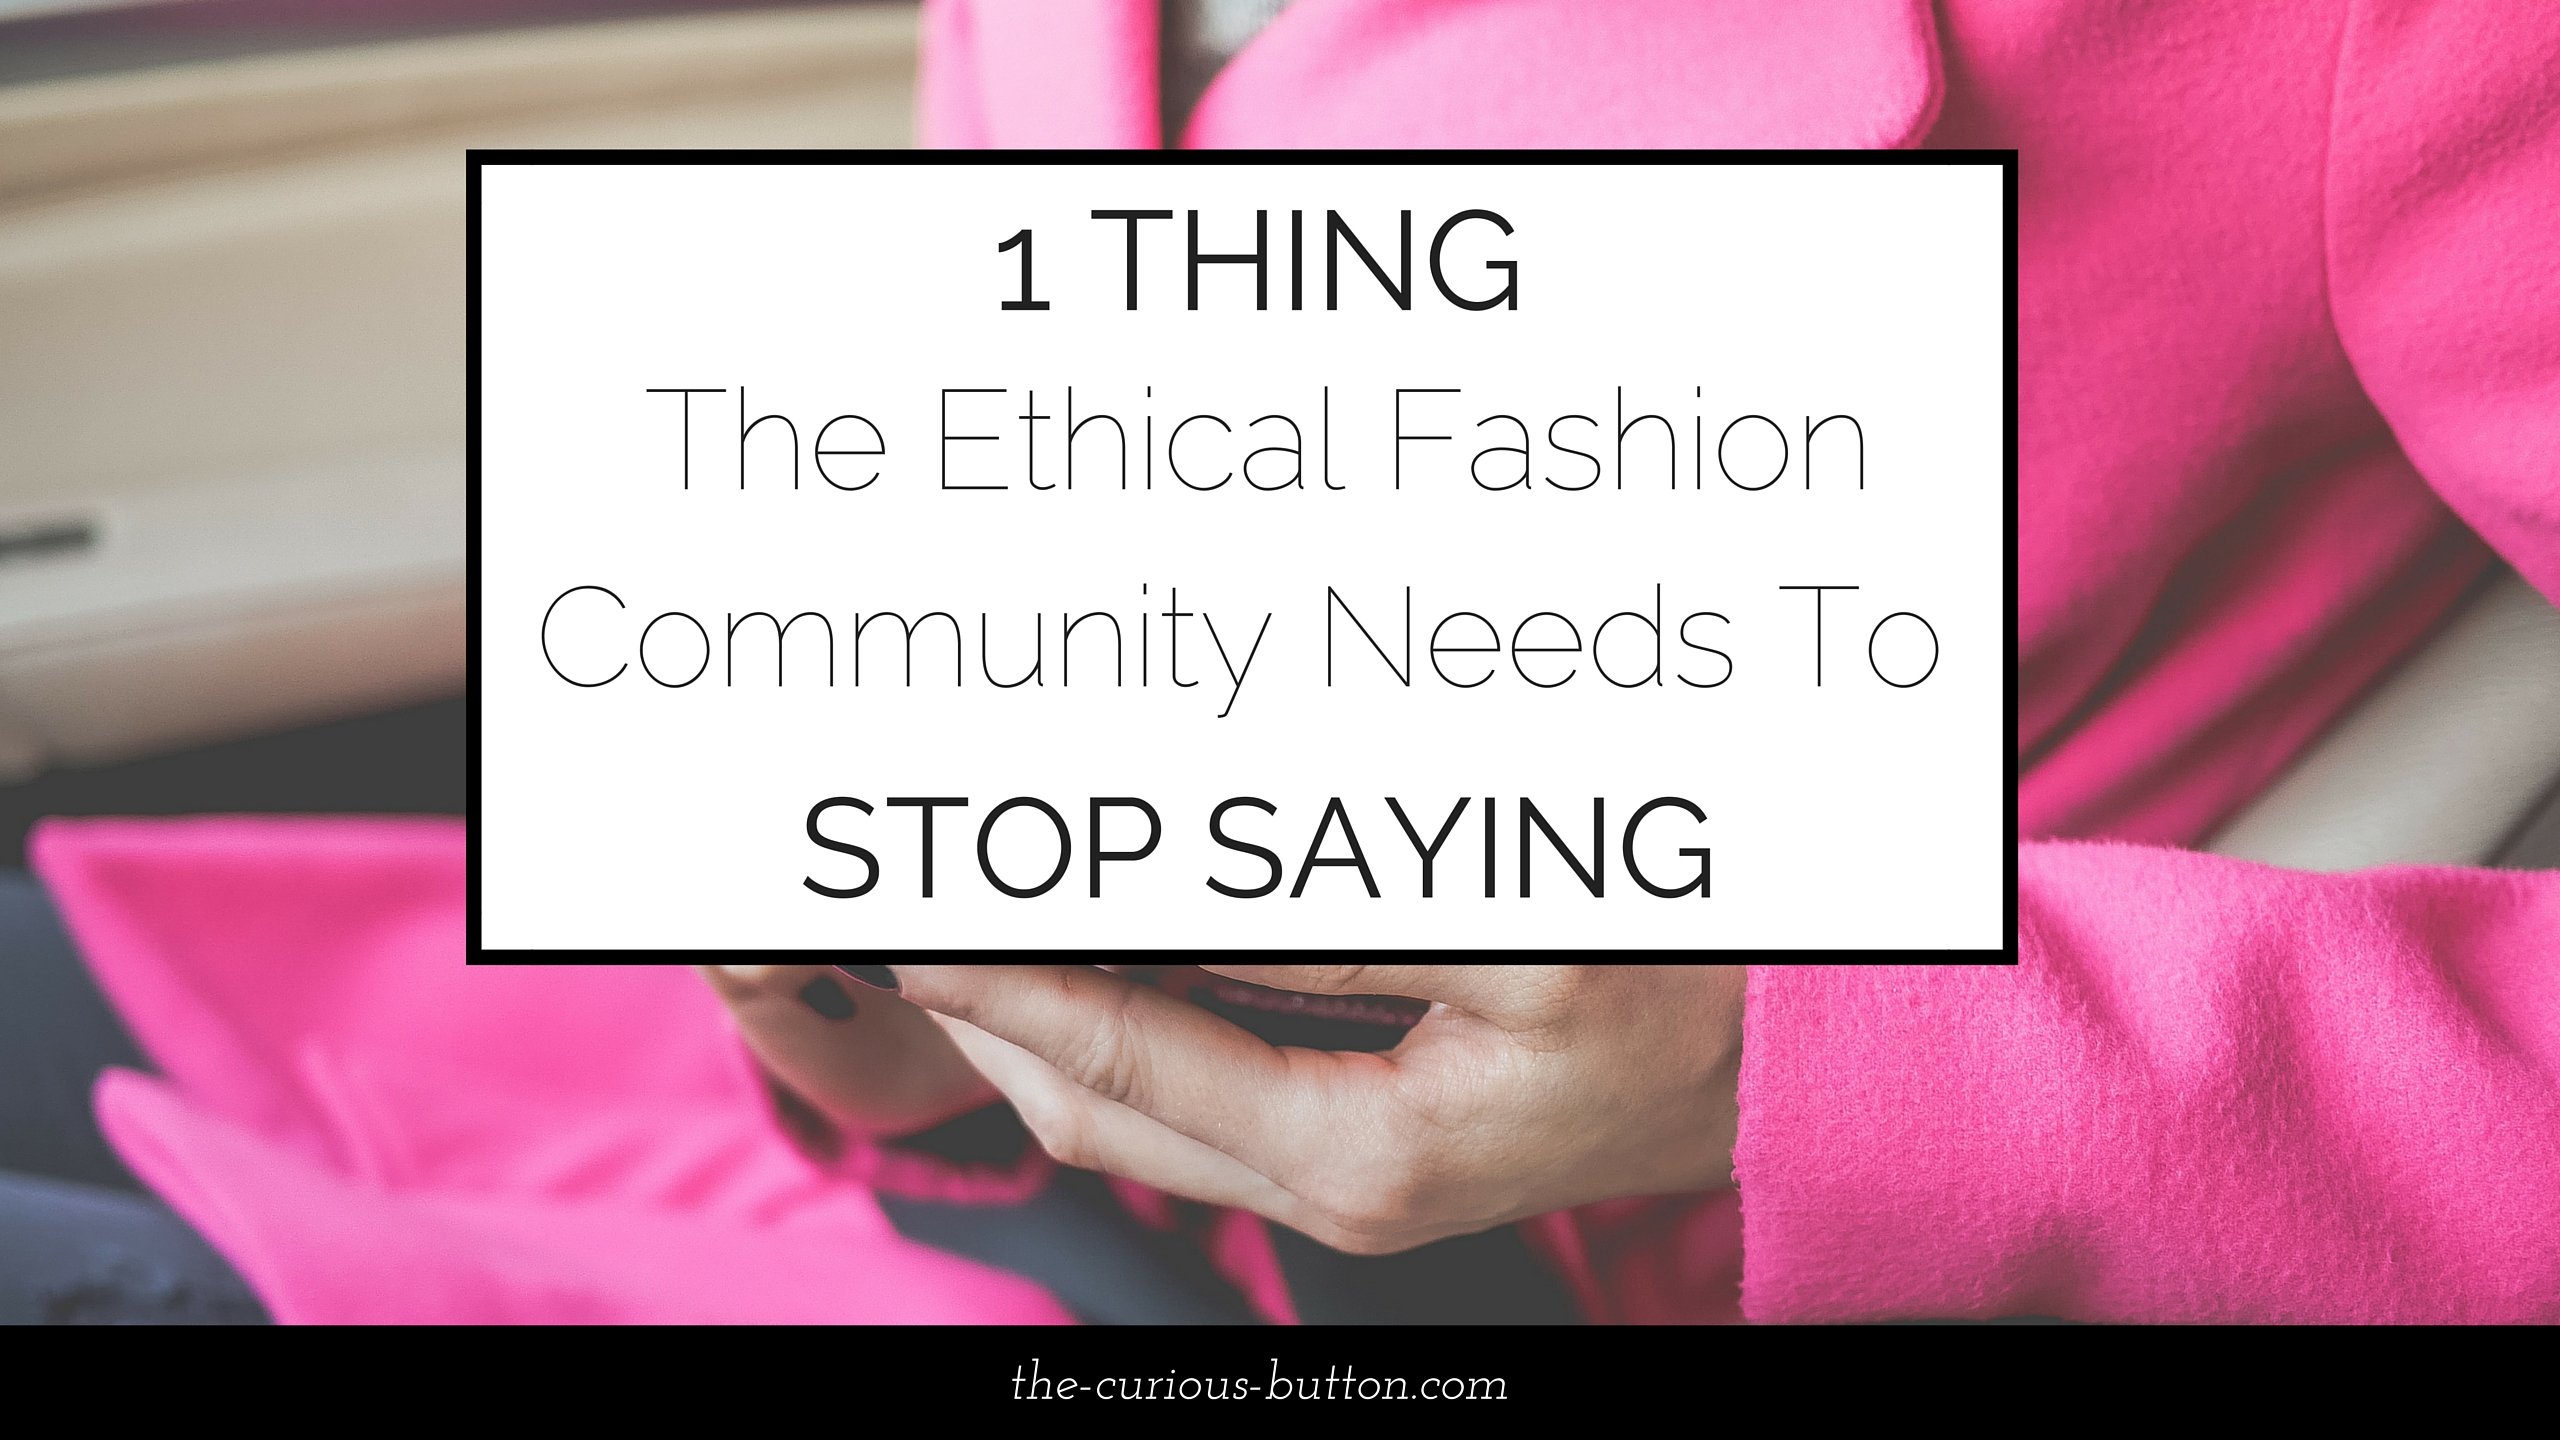 1 Thing the Ethical Fashion Community Needs to Stop Saying | The Curious Button